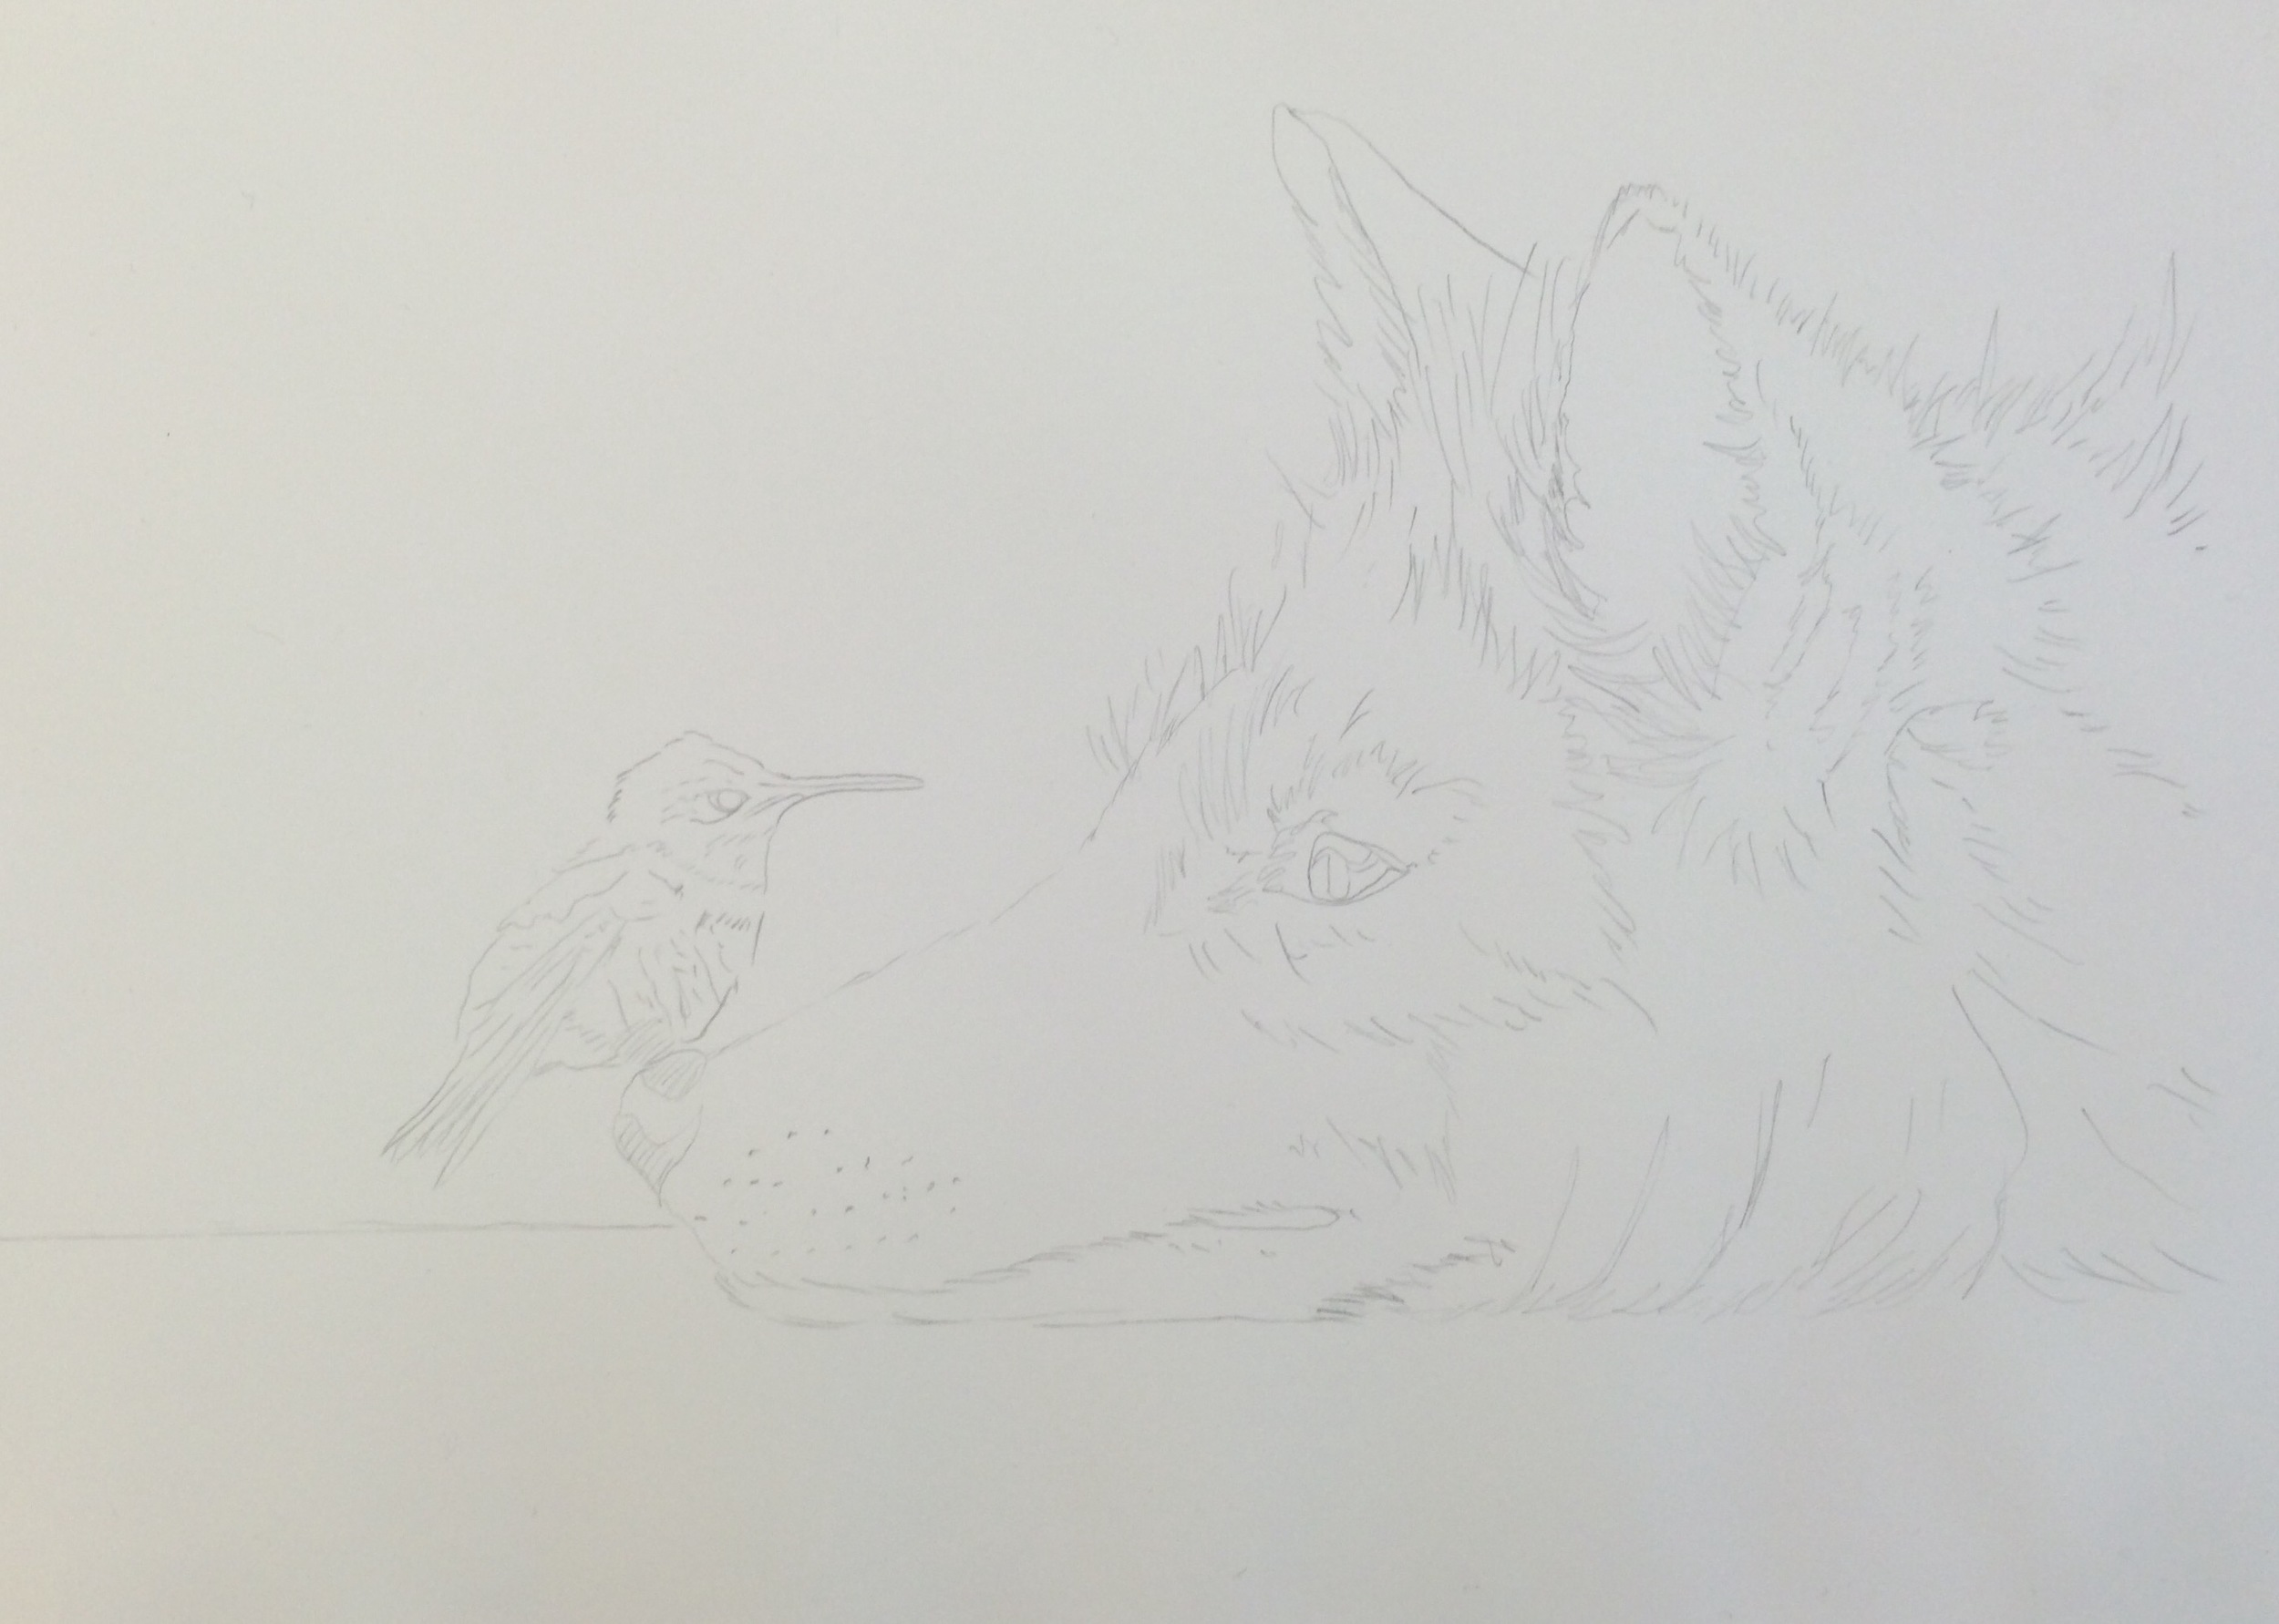 Line drawing done in pencil